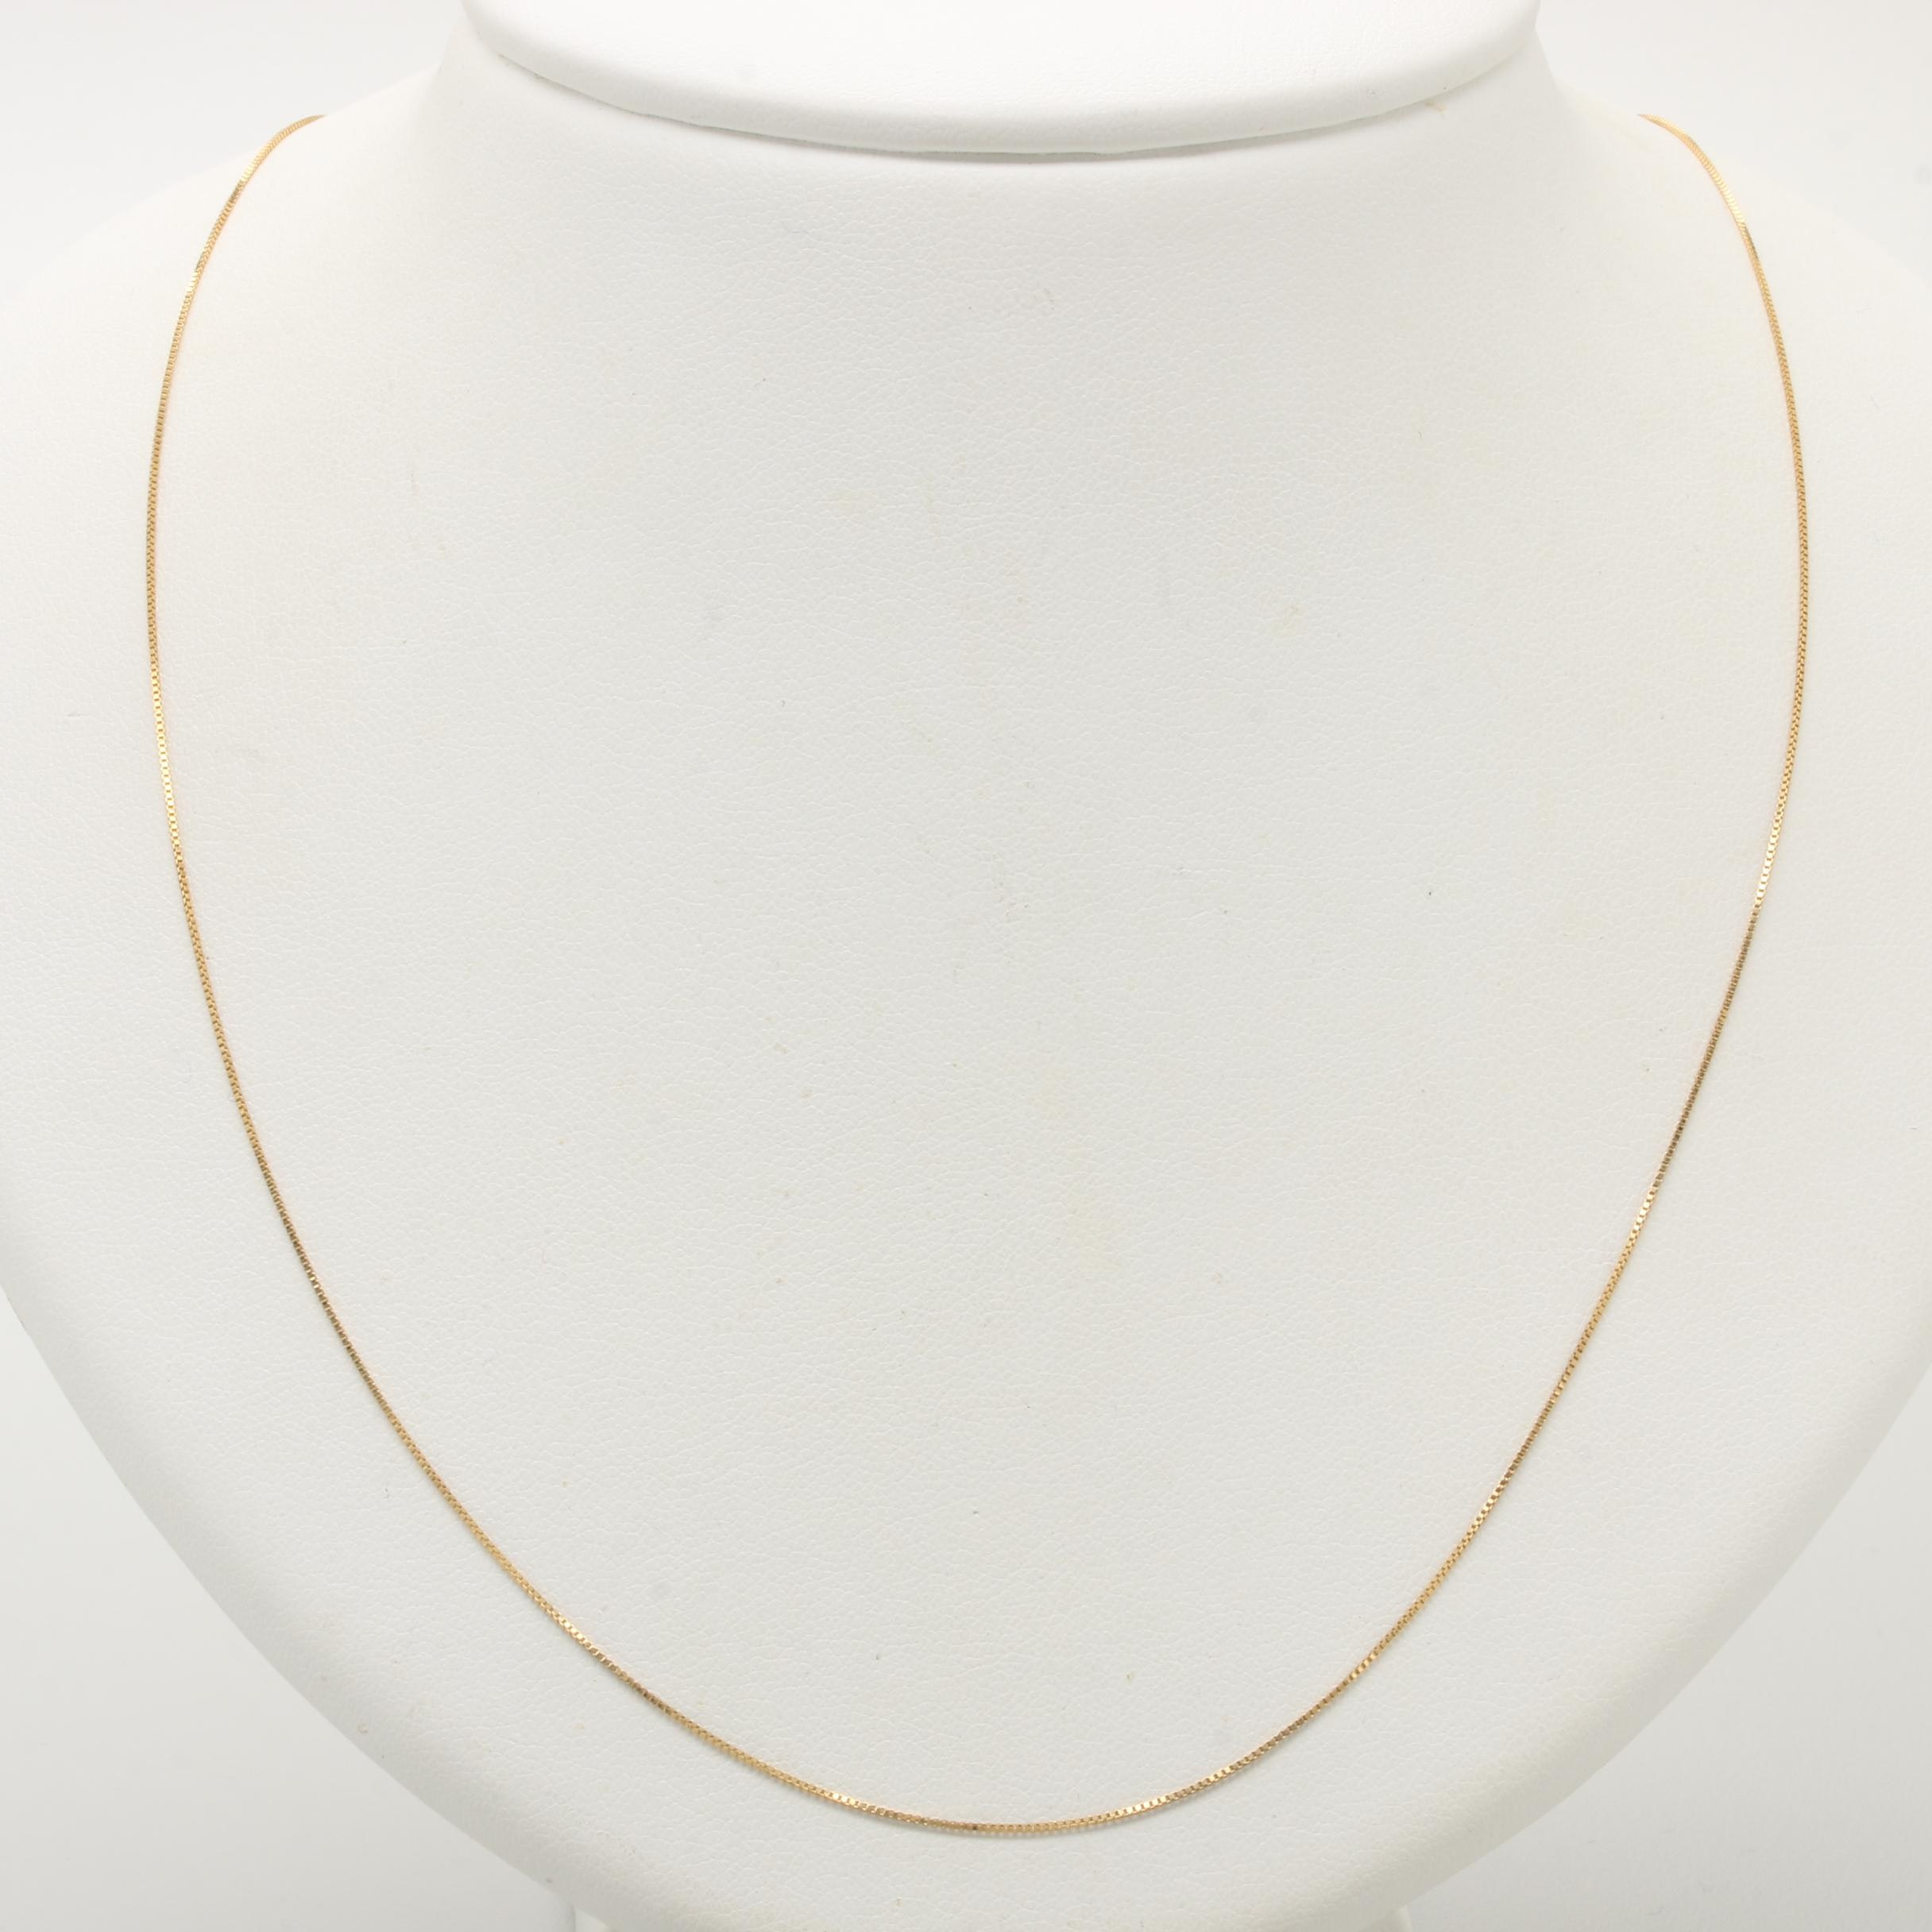 Italian 18K Yellow Gold Box Chain Necklace